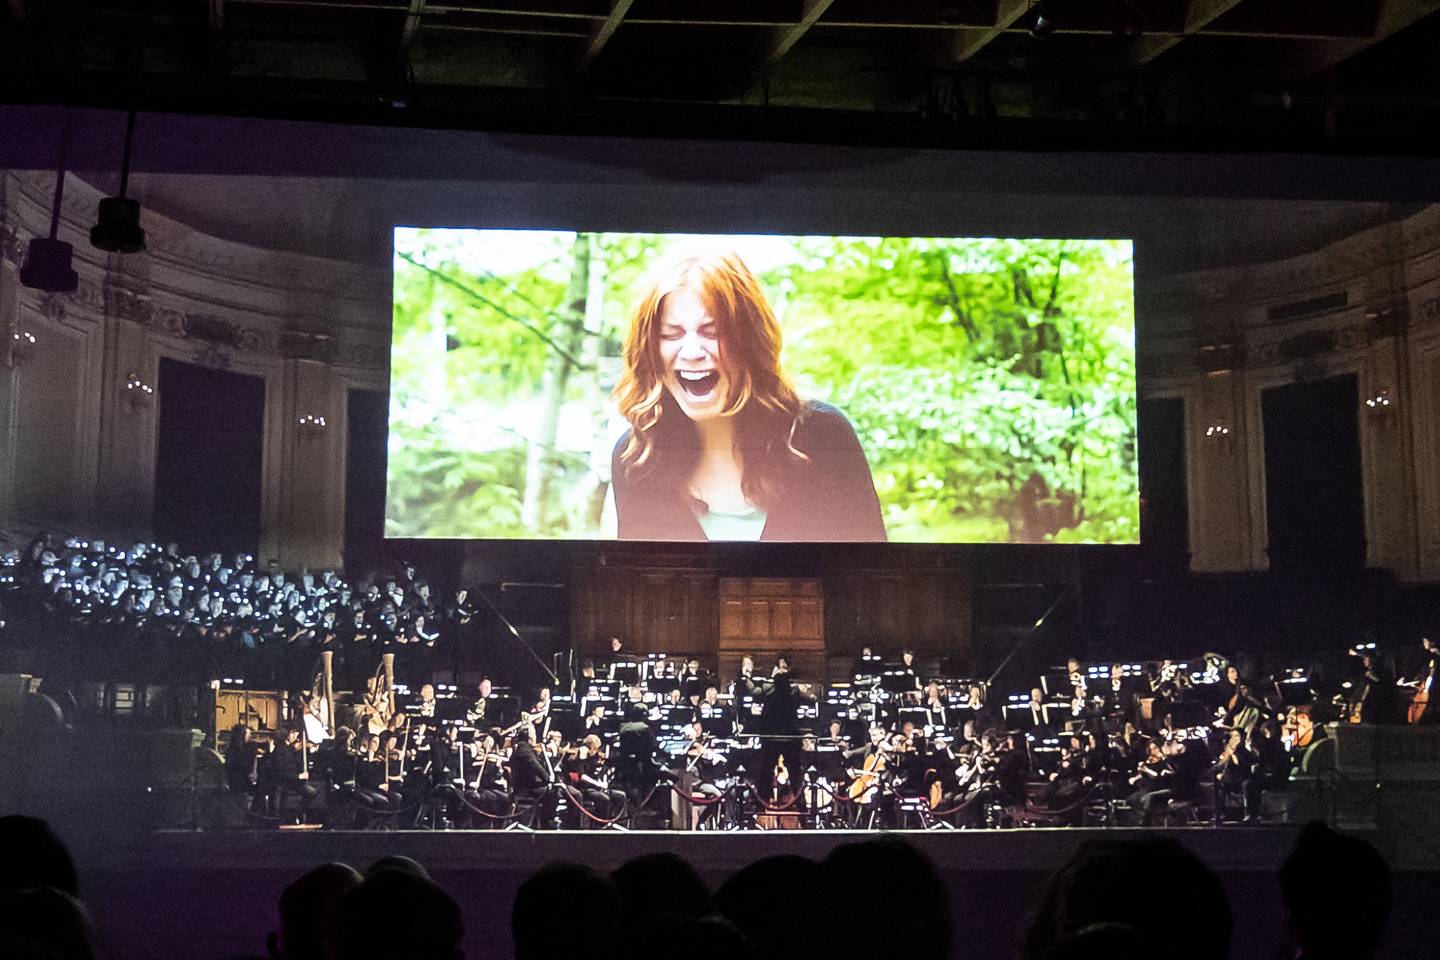 Symphonic Cinema by Lucas van Woerkum at Edwin's, presented by New Dutch Music – Photo by Scott Paxton